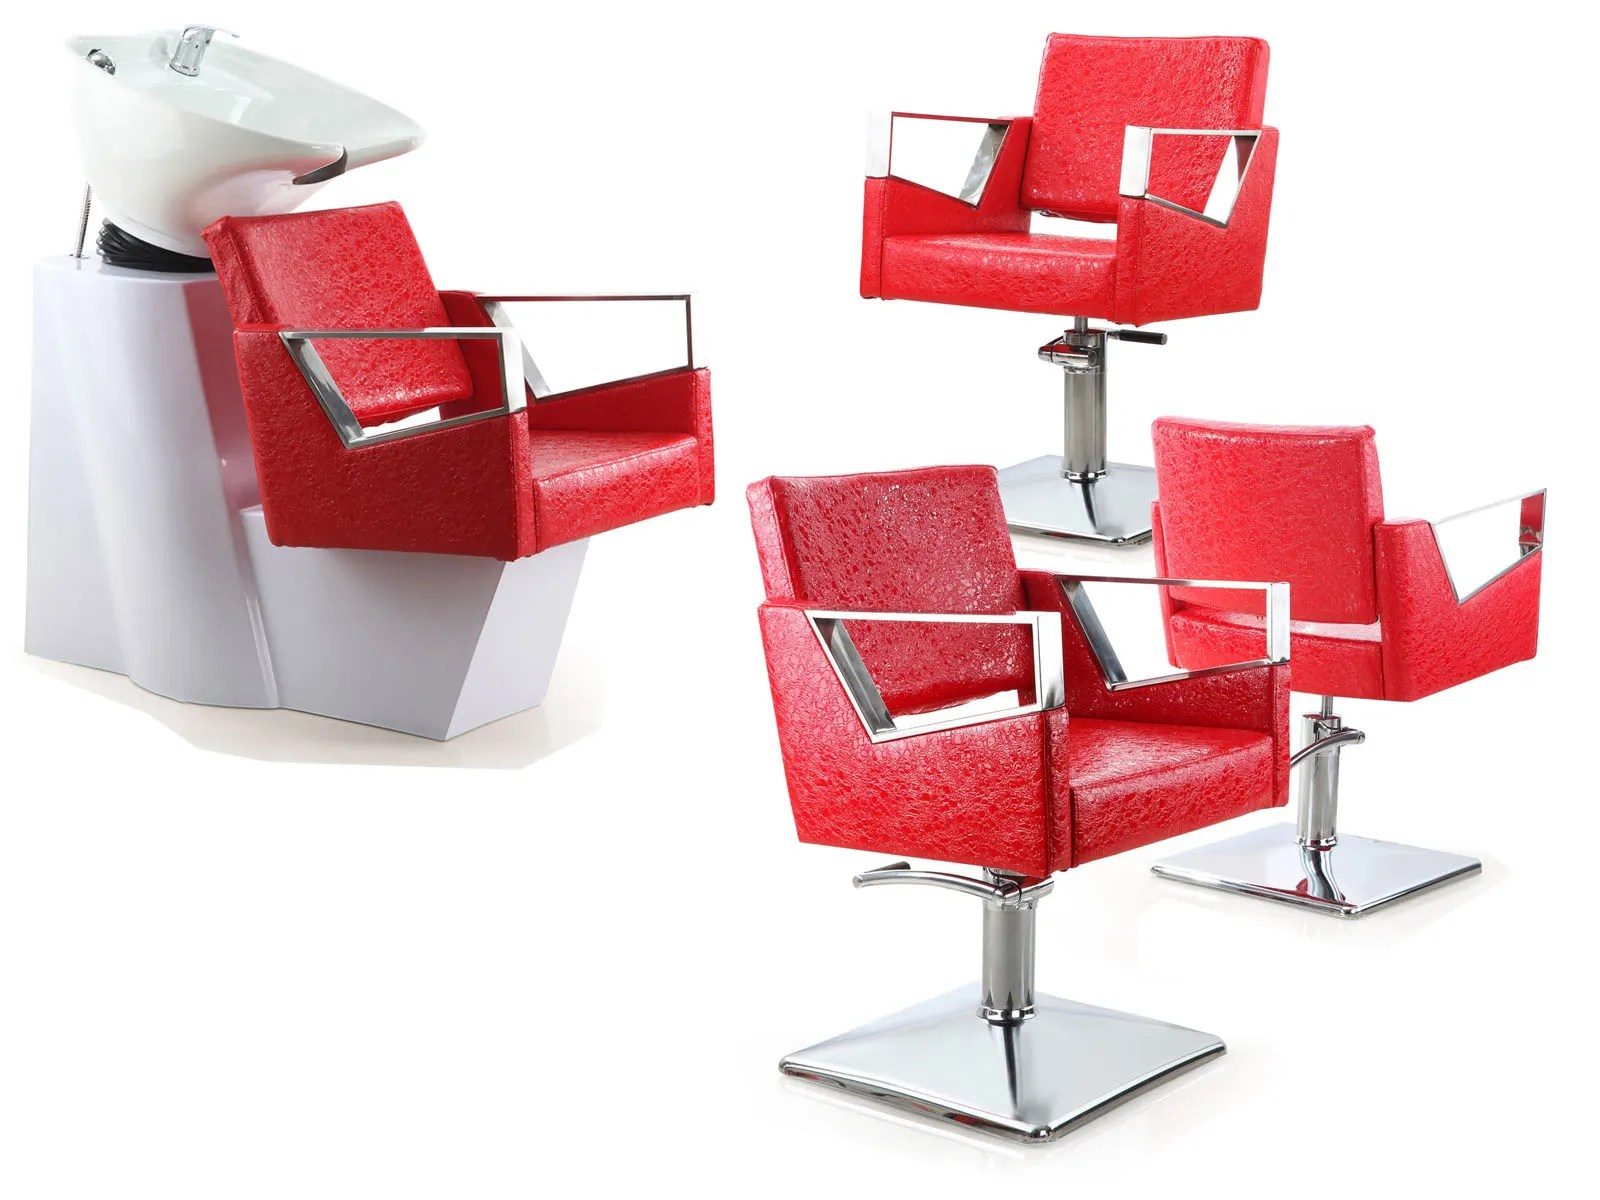 Red Salon Chairs Everything You Need For A New Salon Set Up Living It Up